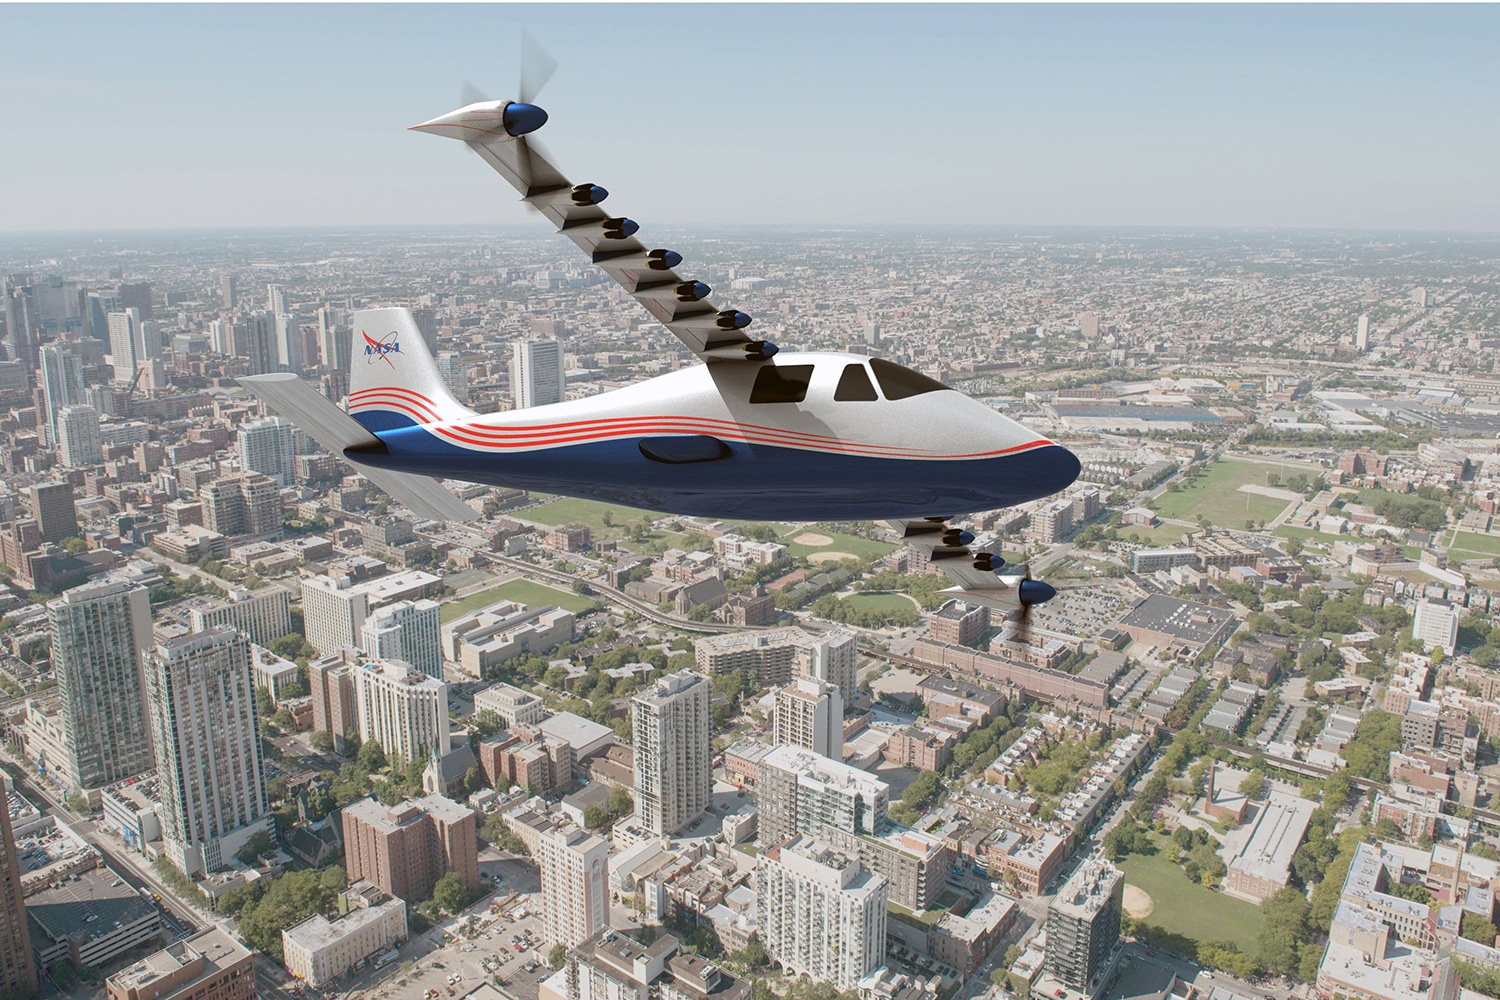 NASA unveils X-57 Maxwell, its 100% electric airplane